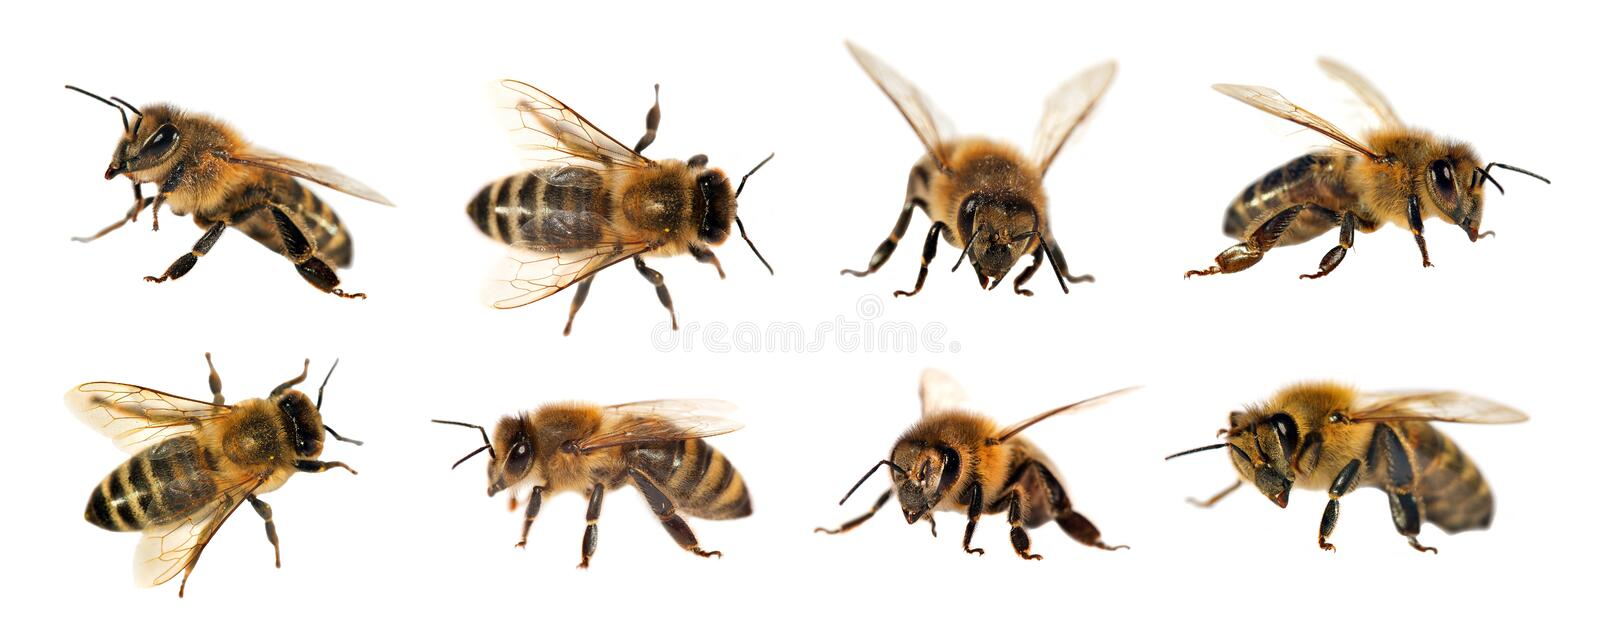 Group of bee or honeybee on white background, honey bees. Group of bee or honeybee in Latin Apis Mellifera, european or western honey bee isolated on the white